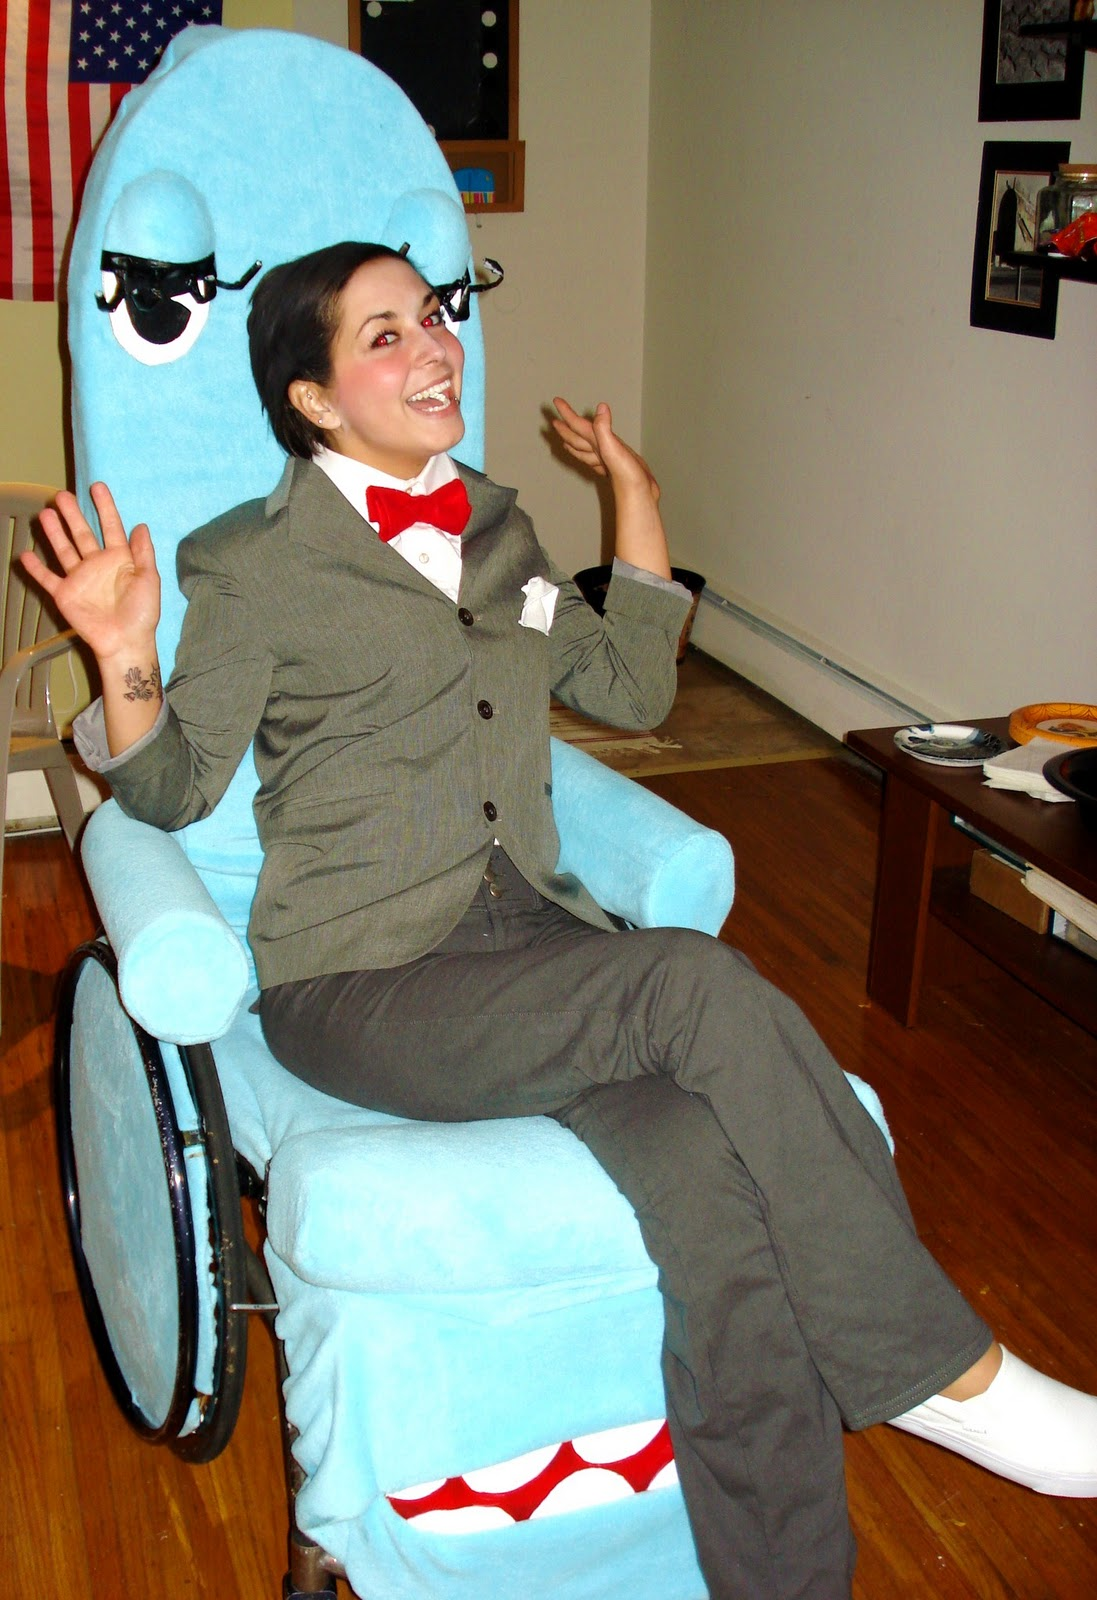 Our Hungry House Halloween Costumes With Wheelchairs